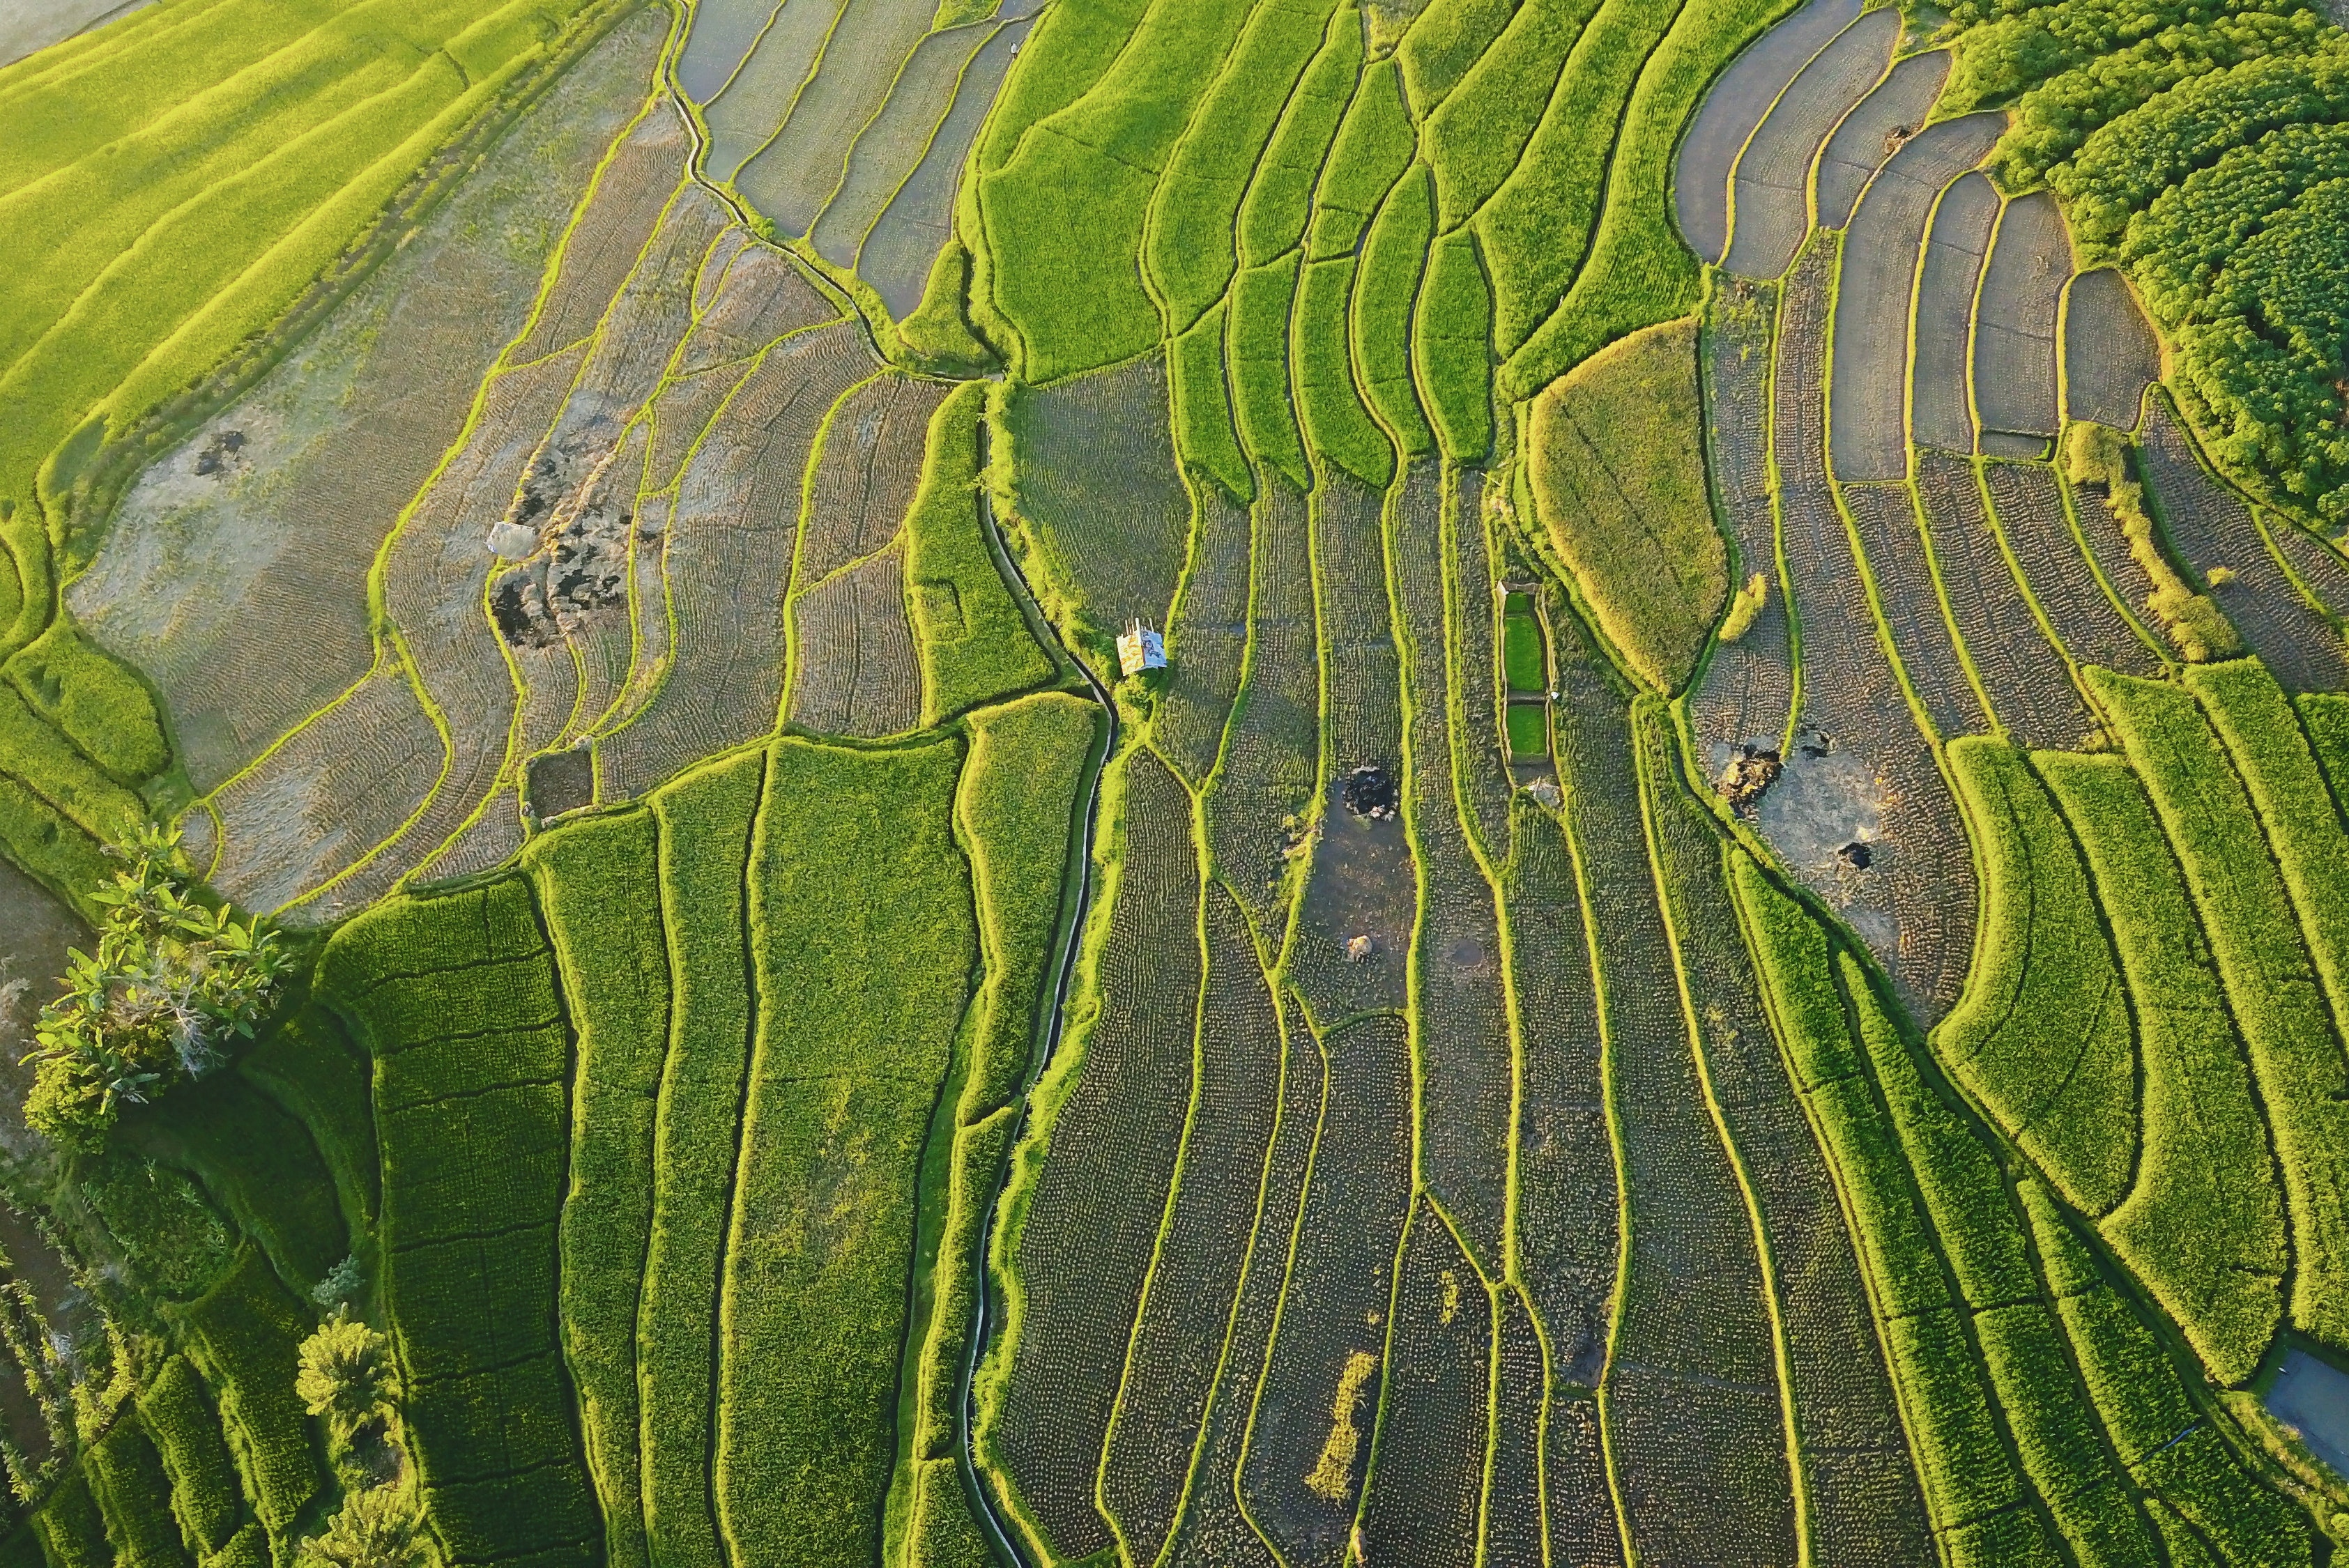 Aerial photograph of cropland in Asia